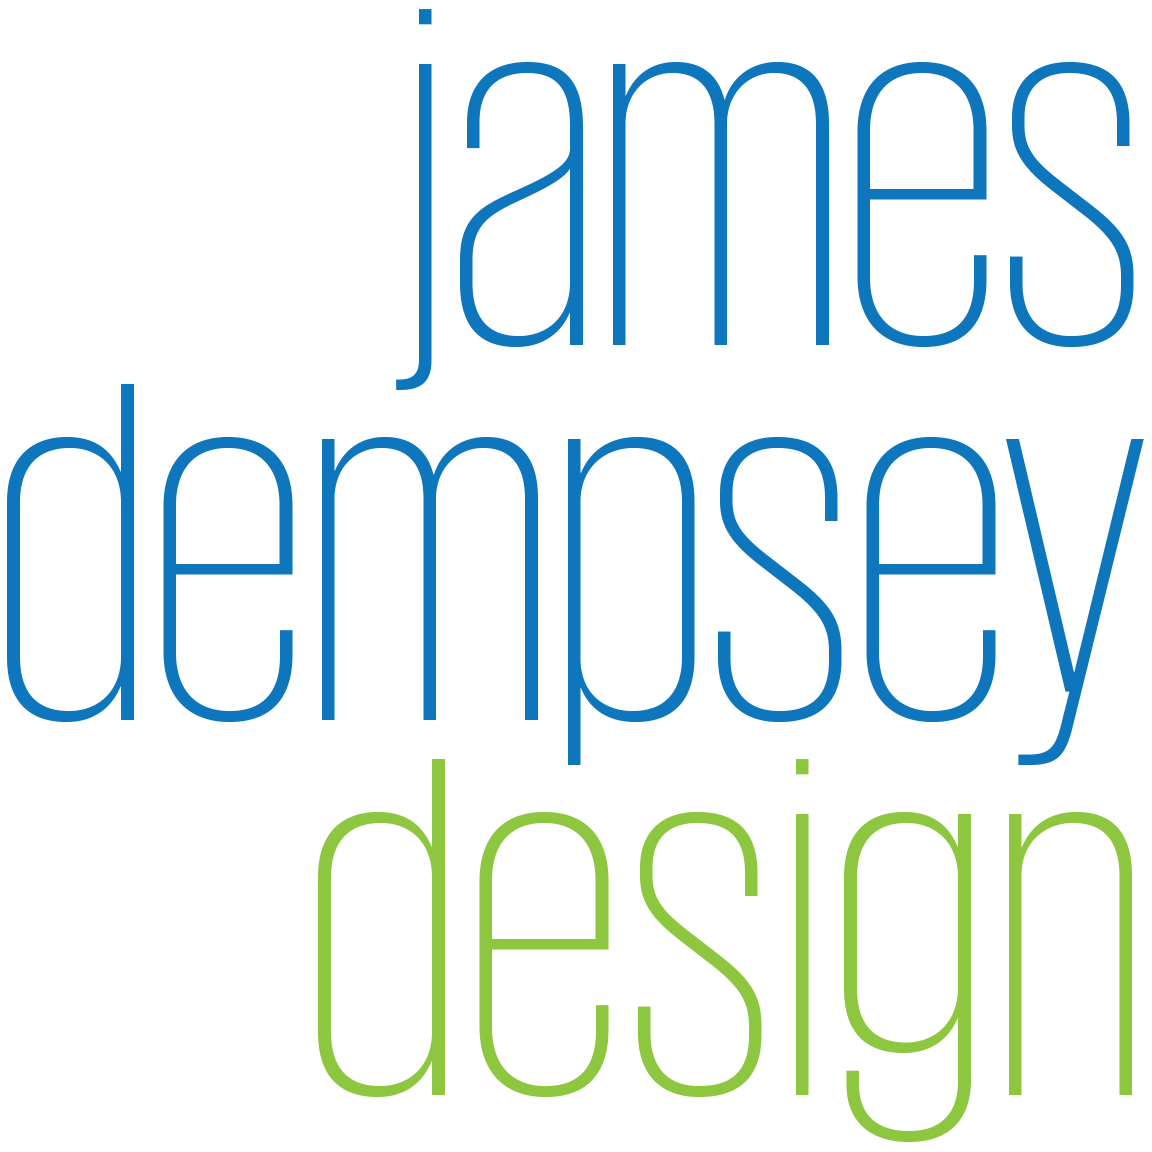 James Dempsey Design